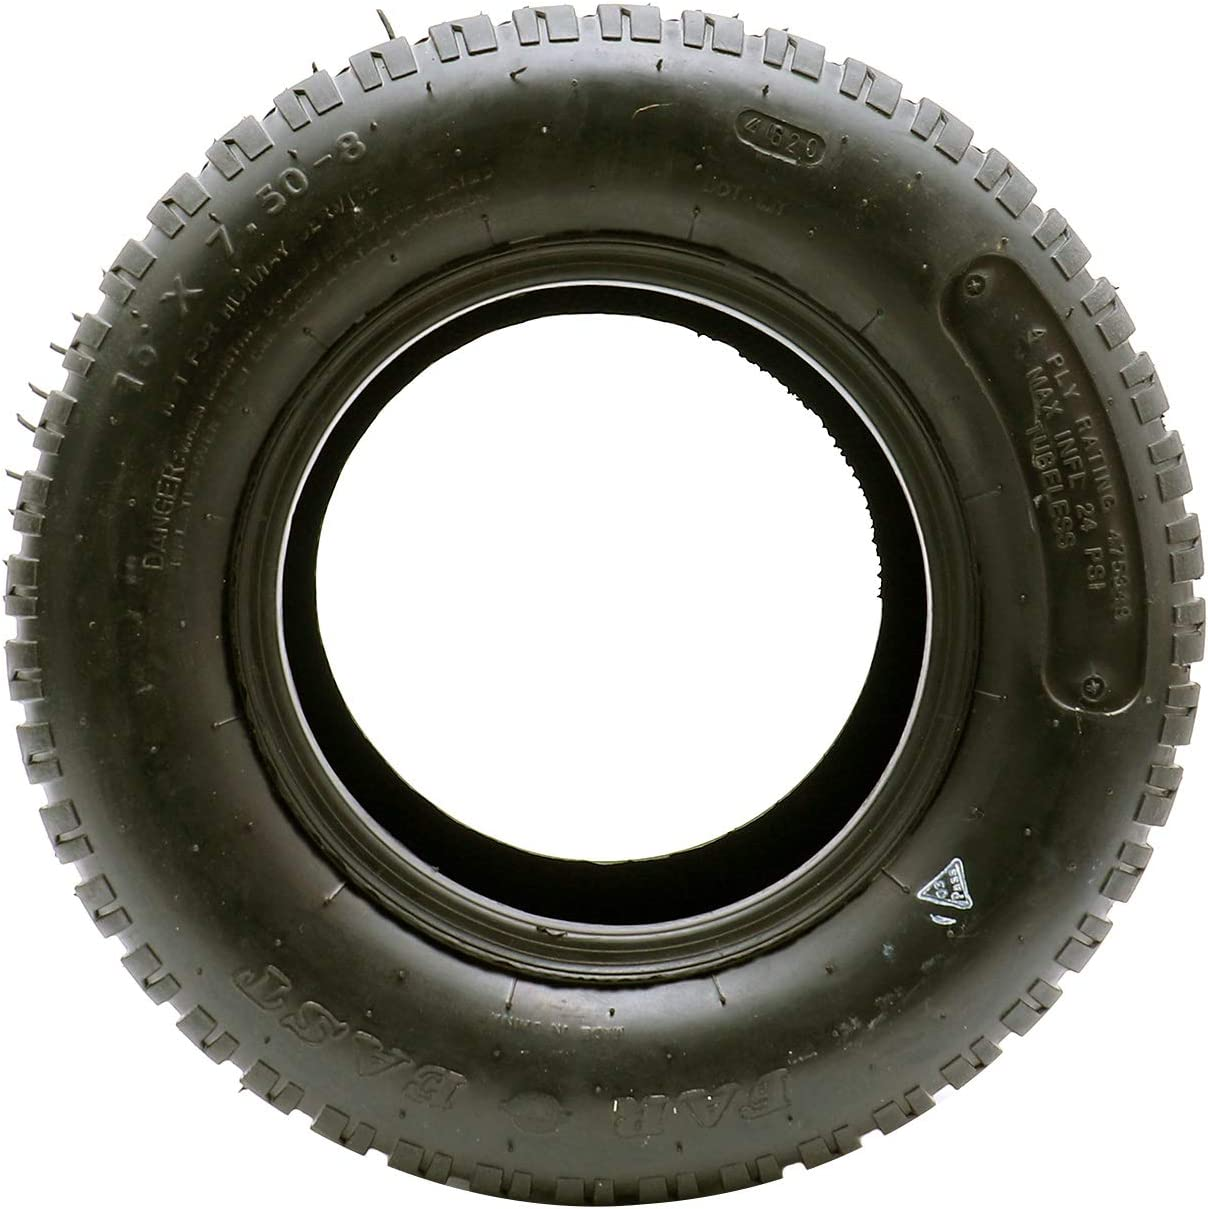 UCUT 16x7.50-8 Turf Tire for Lawn Mower Garden Tractor Riding Mower